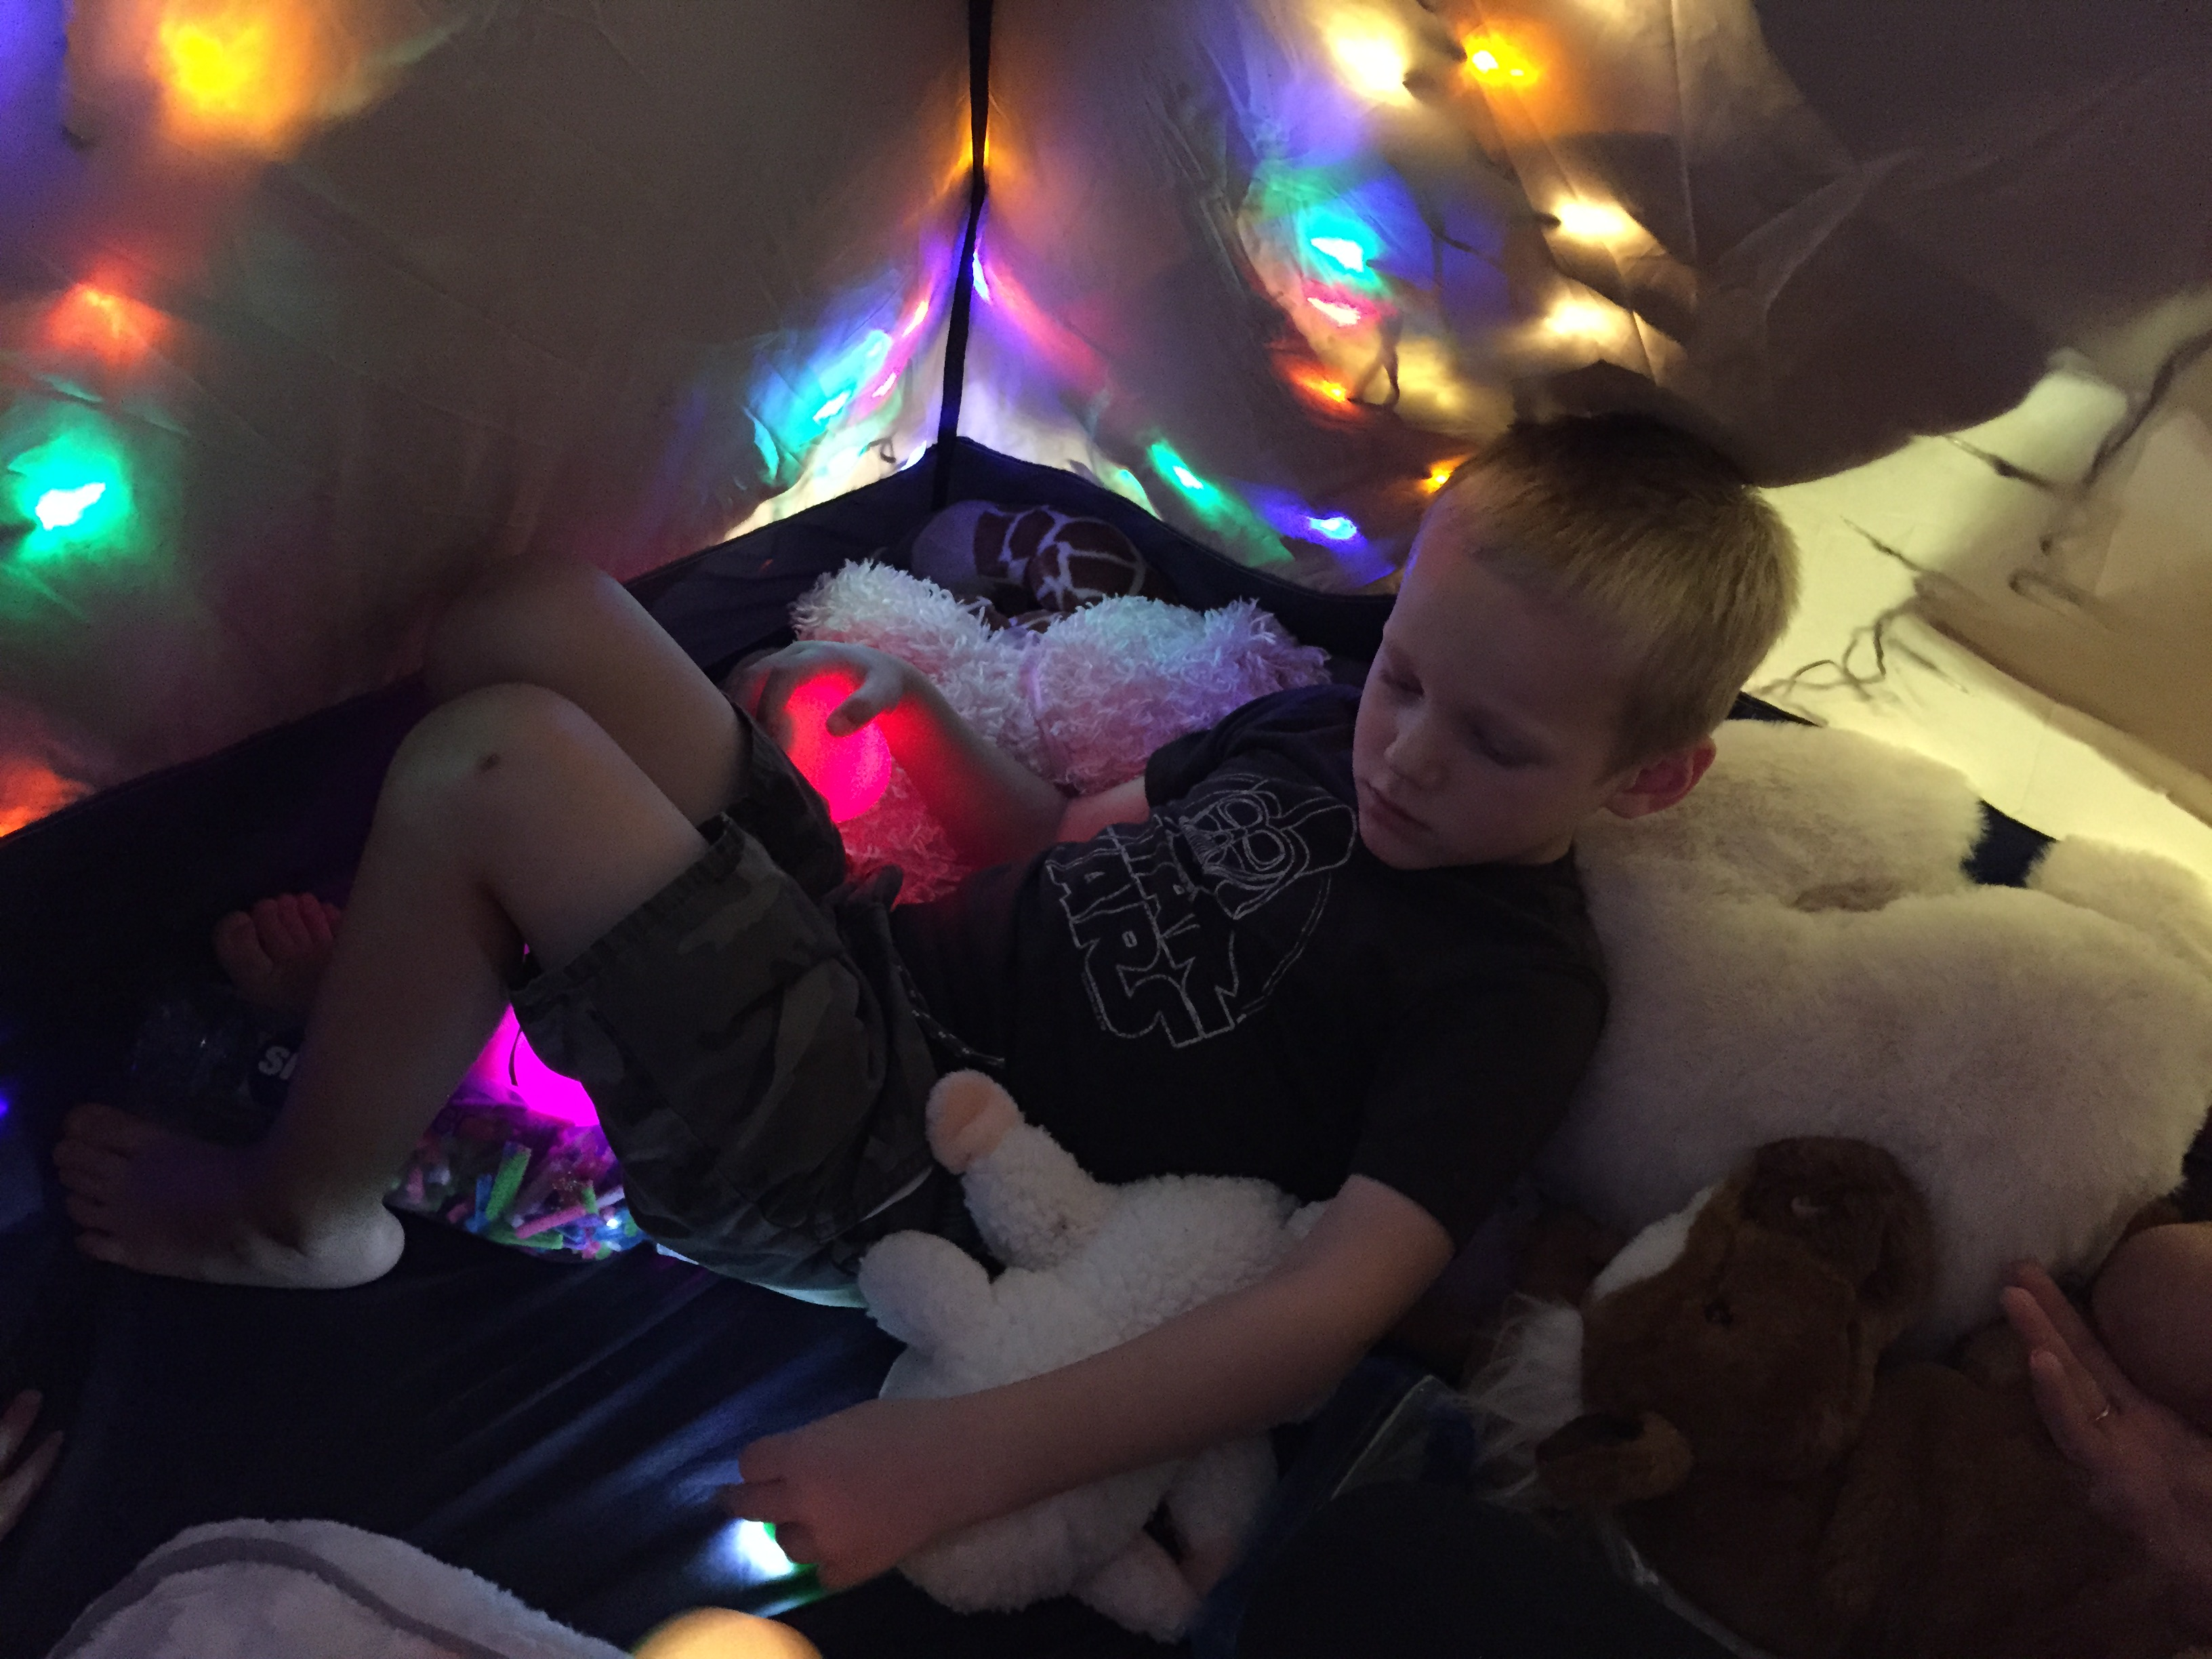 Little boy in blanket fort with a pink glowing magic egg